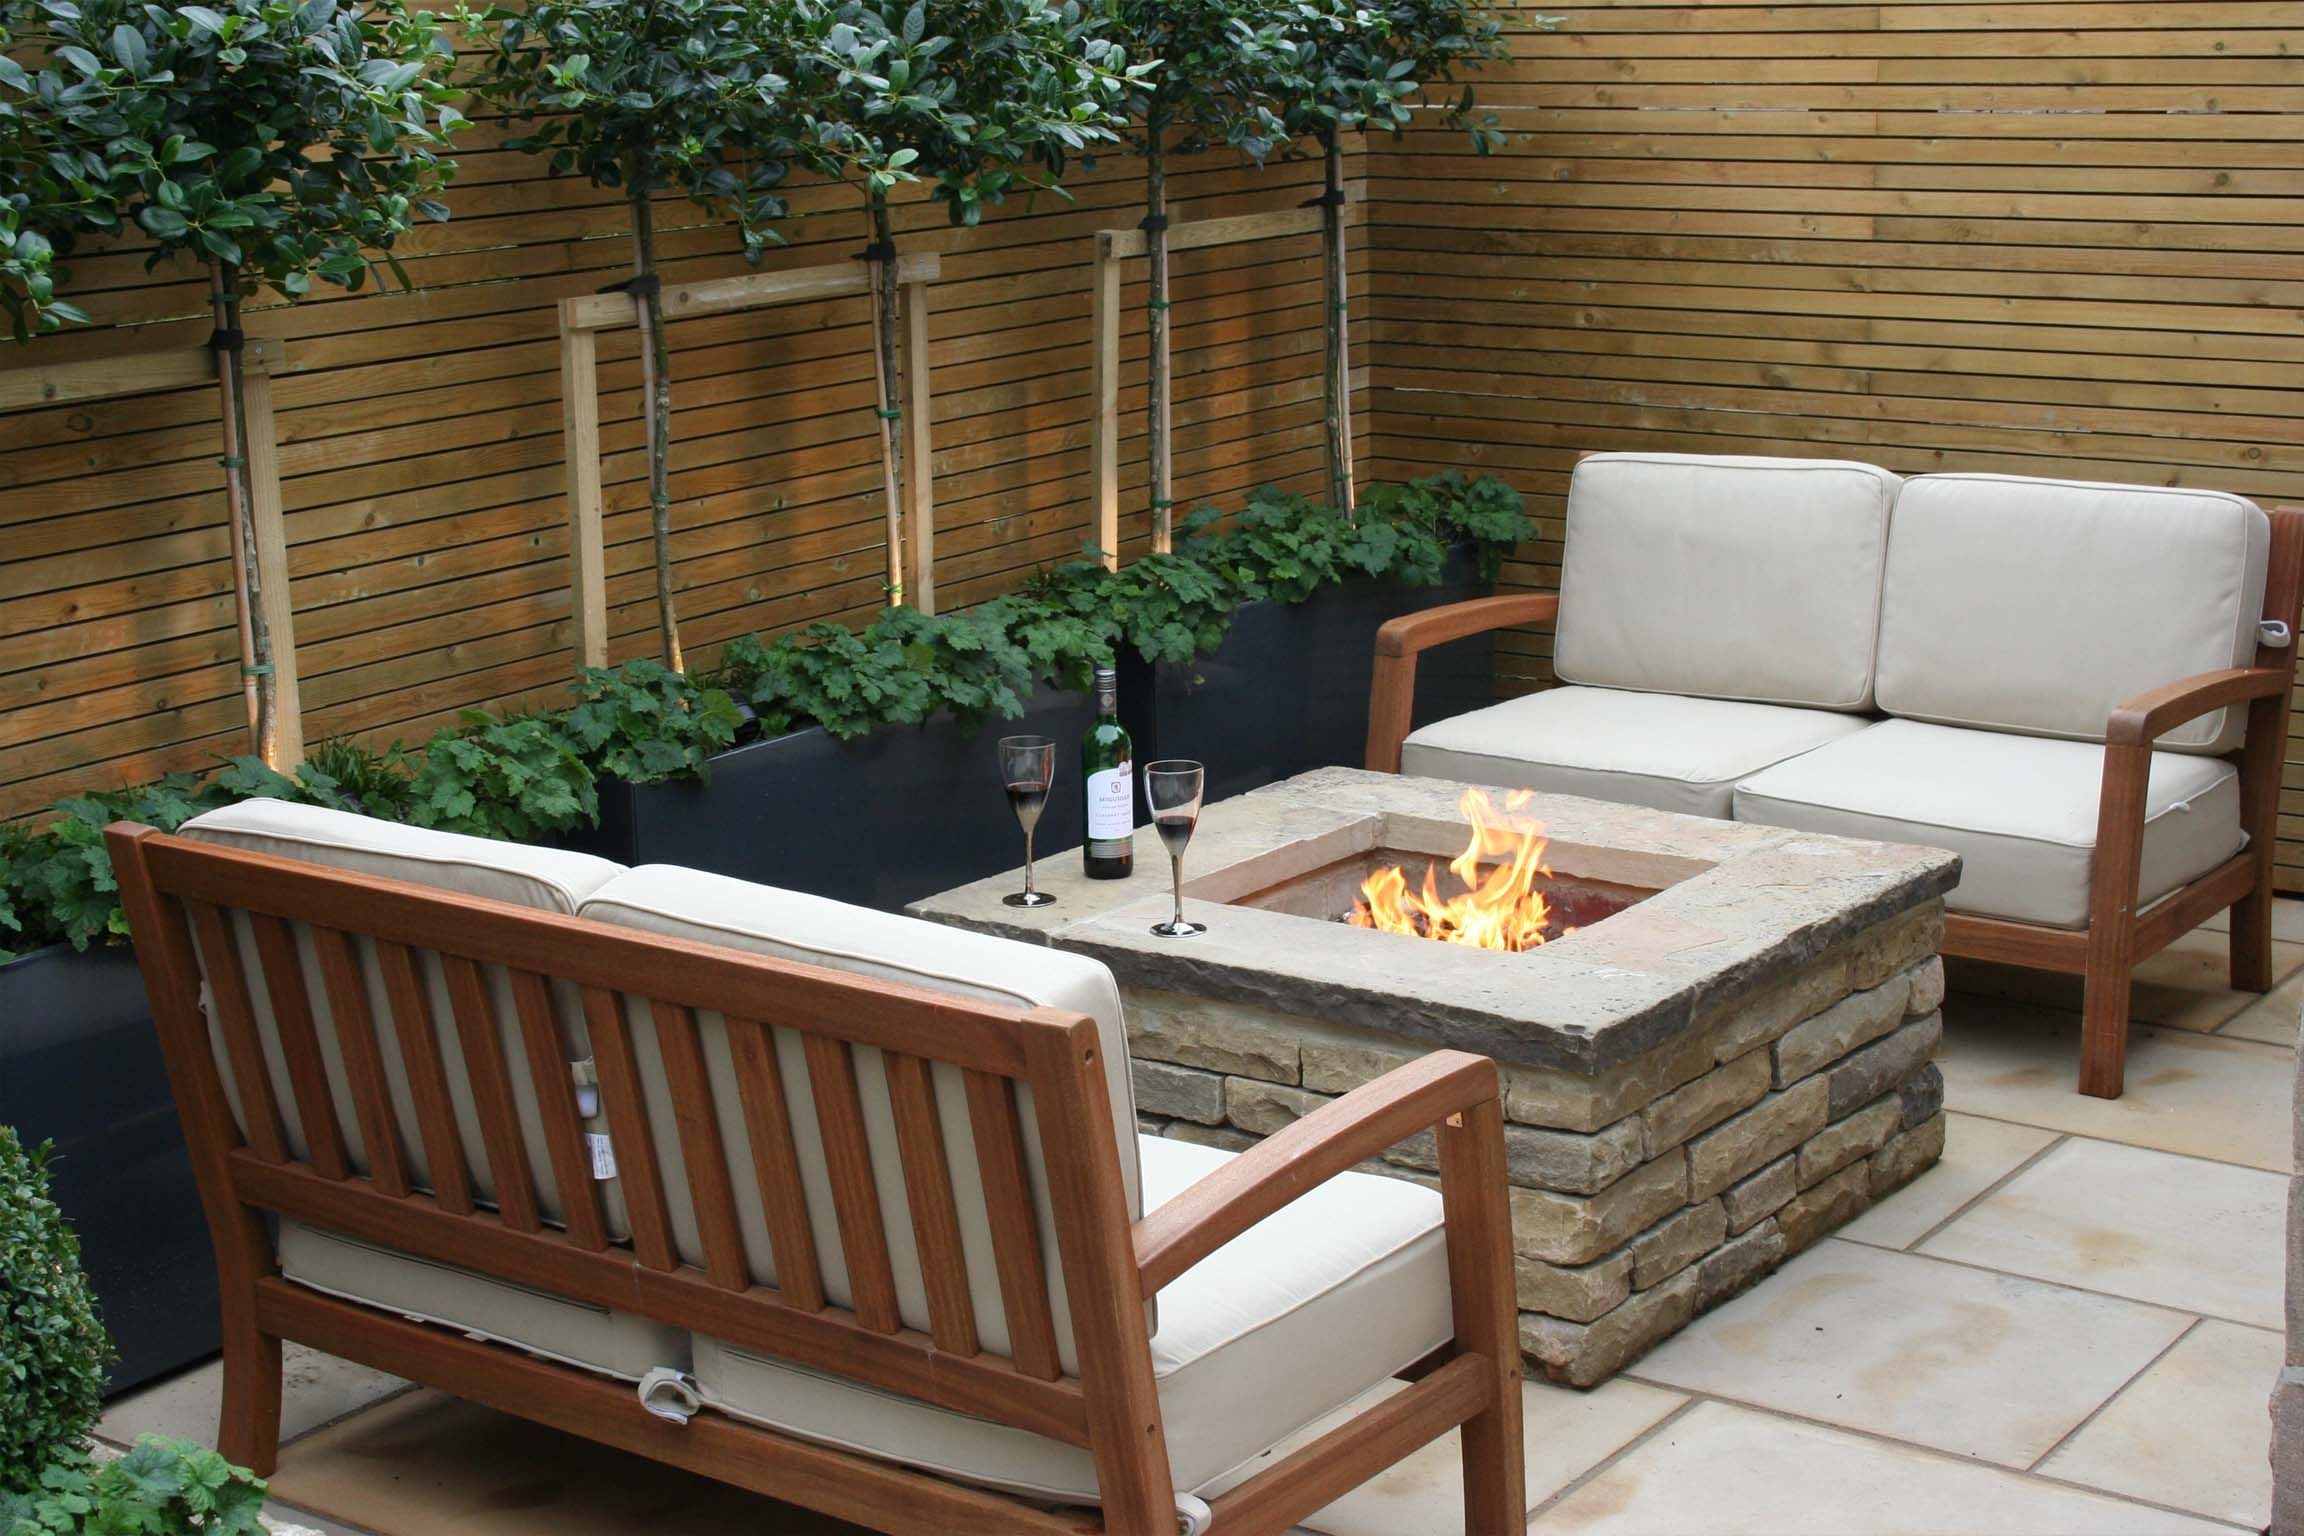 Urban chic courtyard garden outdoor fire pit outdoor sofas bestall co evergreen planting sawn stone